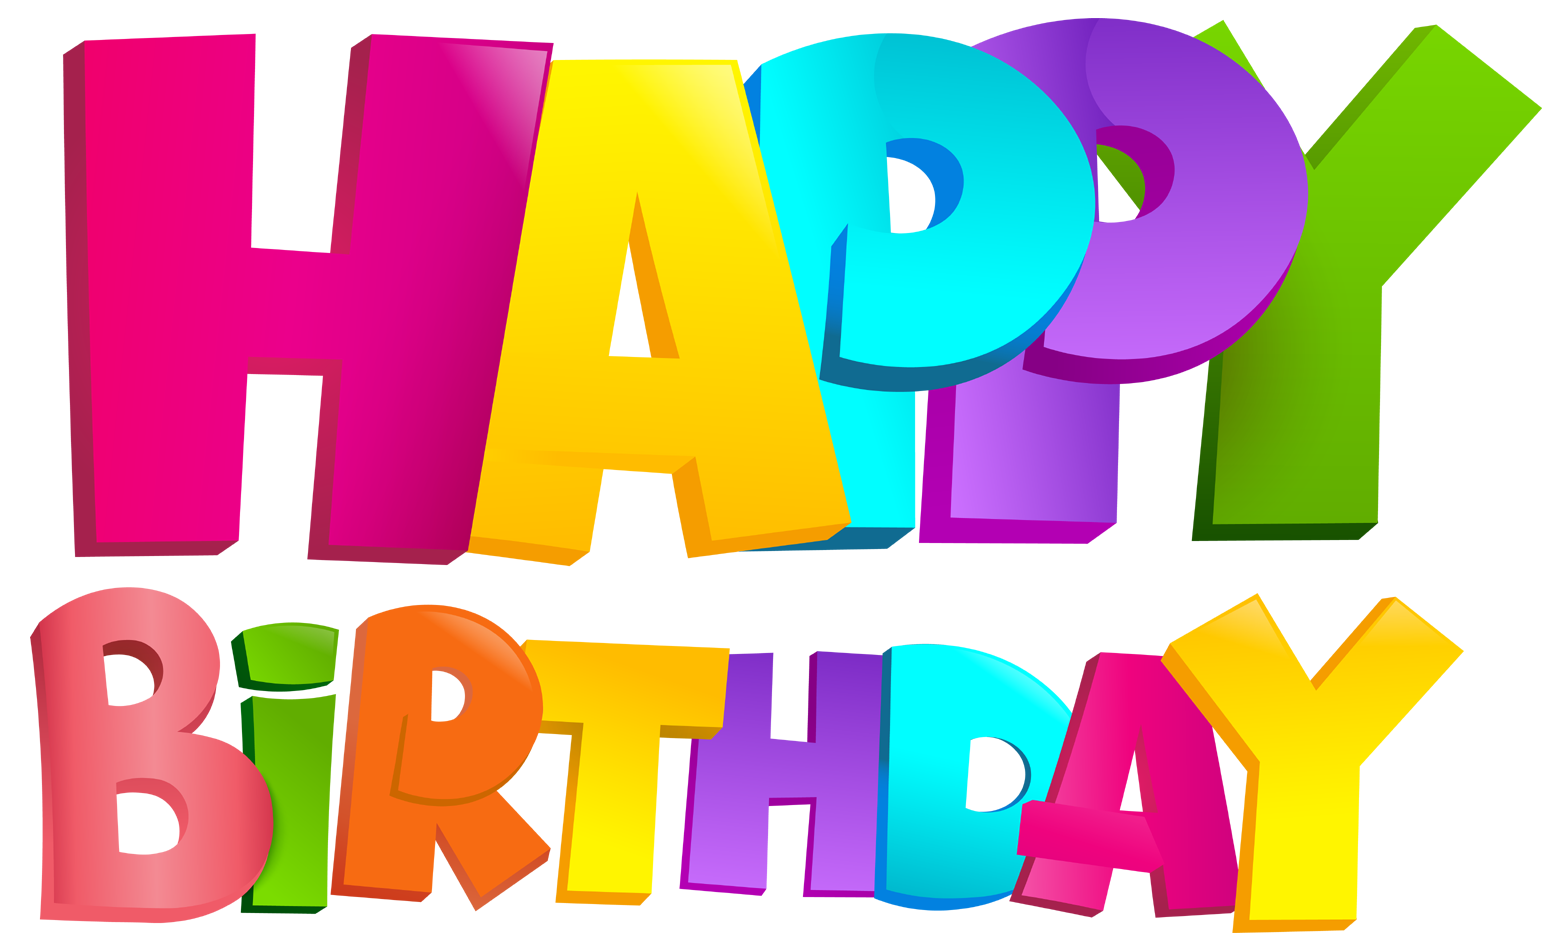 Happy birthday png text. D art free imges